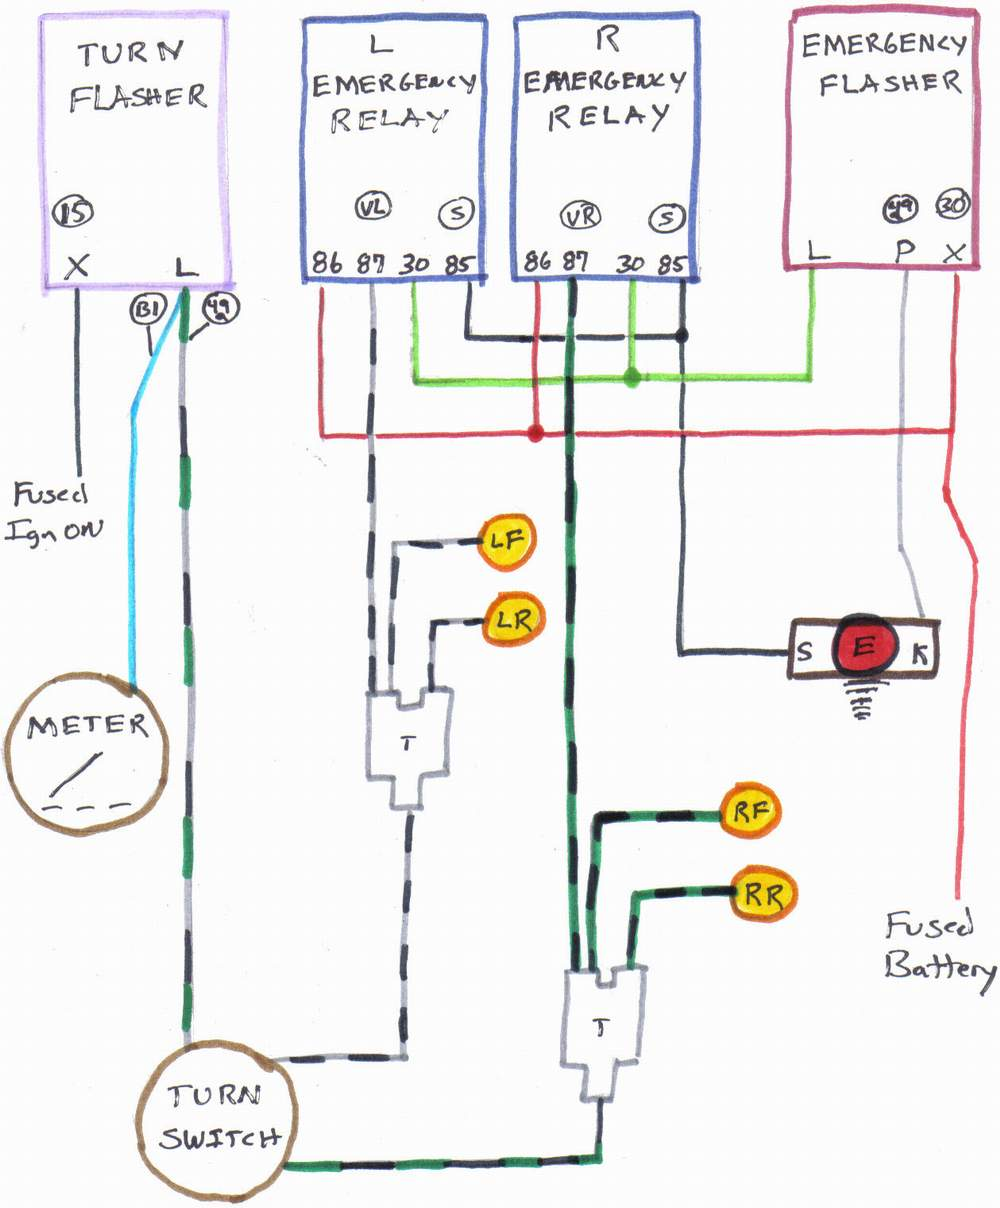 medium resolution of wiring diagram for emergency flashers wiring diagram load wiring diagram for emergency flashers